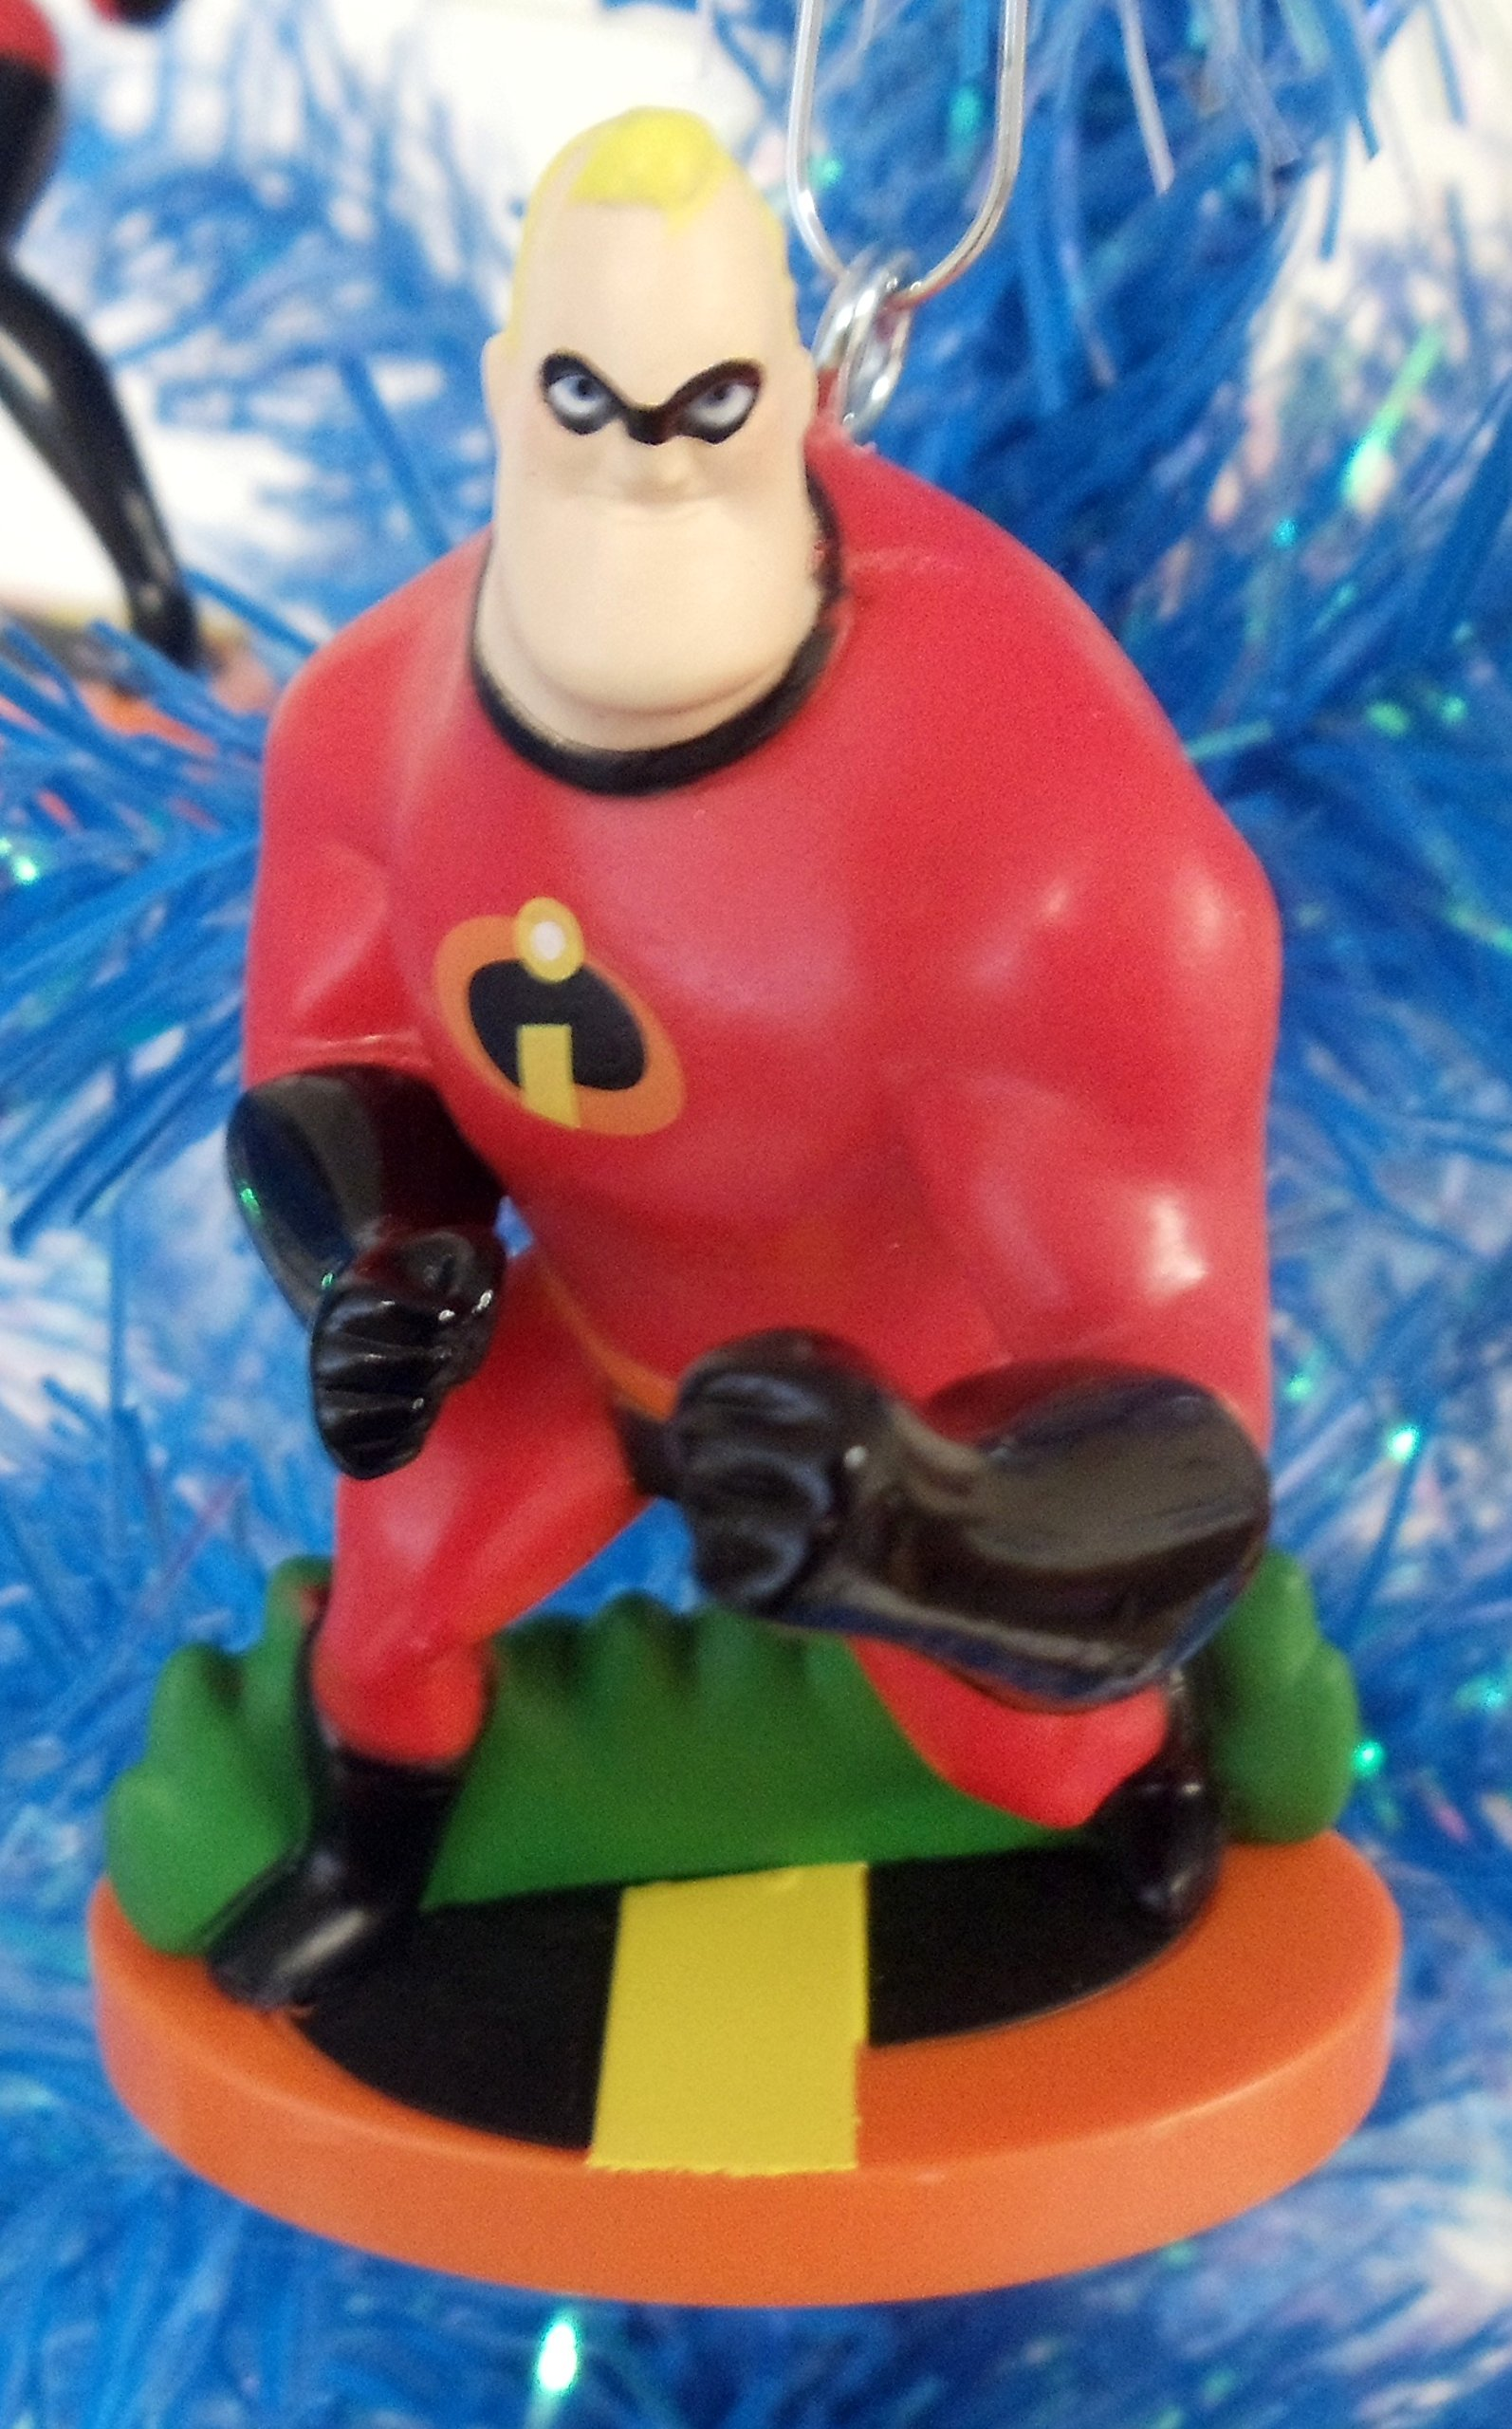 On Motorcycle from Incredibles 2 Figurine Holiday Christmas Tree Ornament New for 2018 Elastigirl Limited Availability